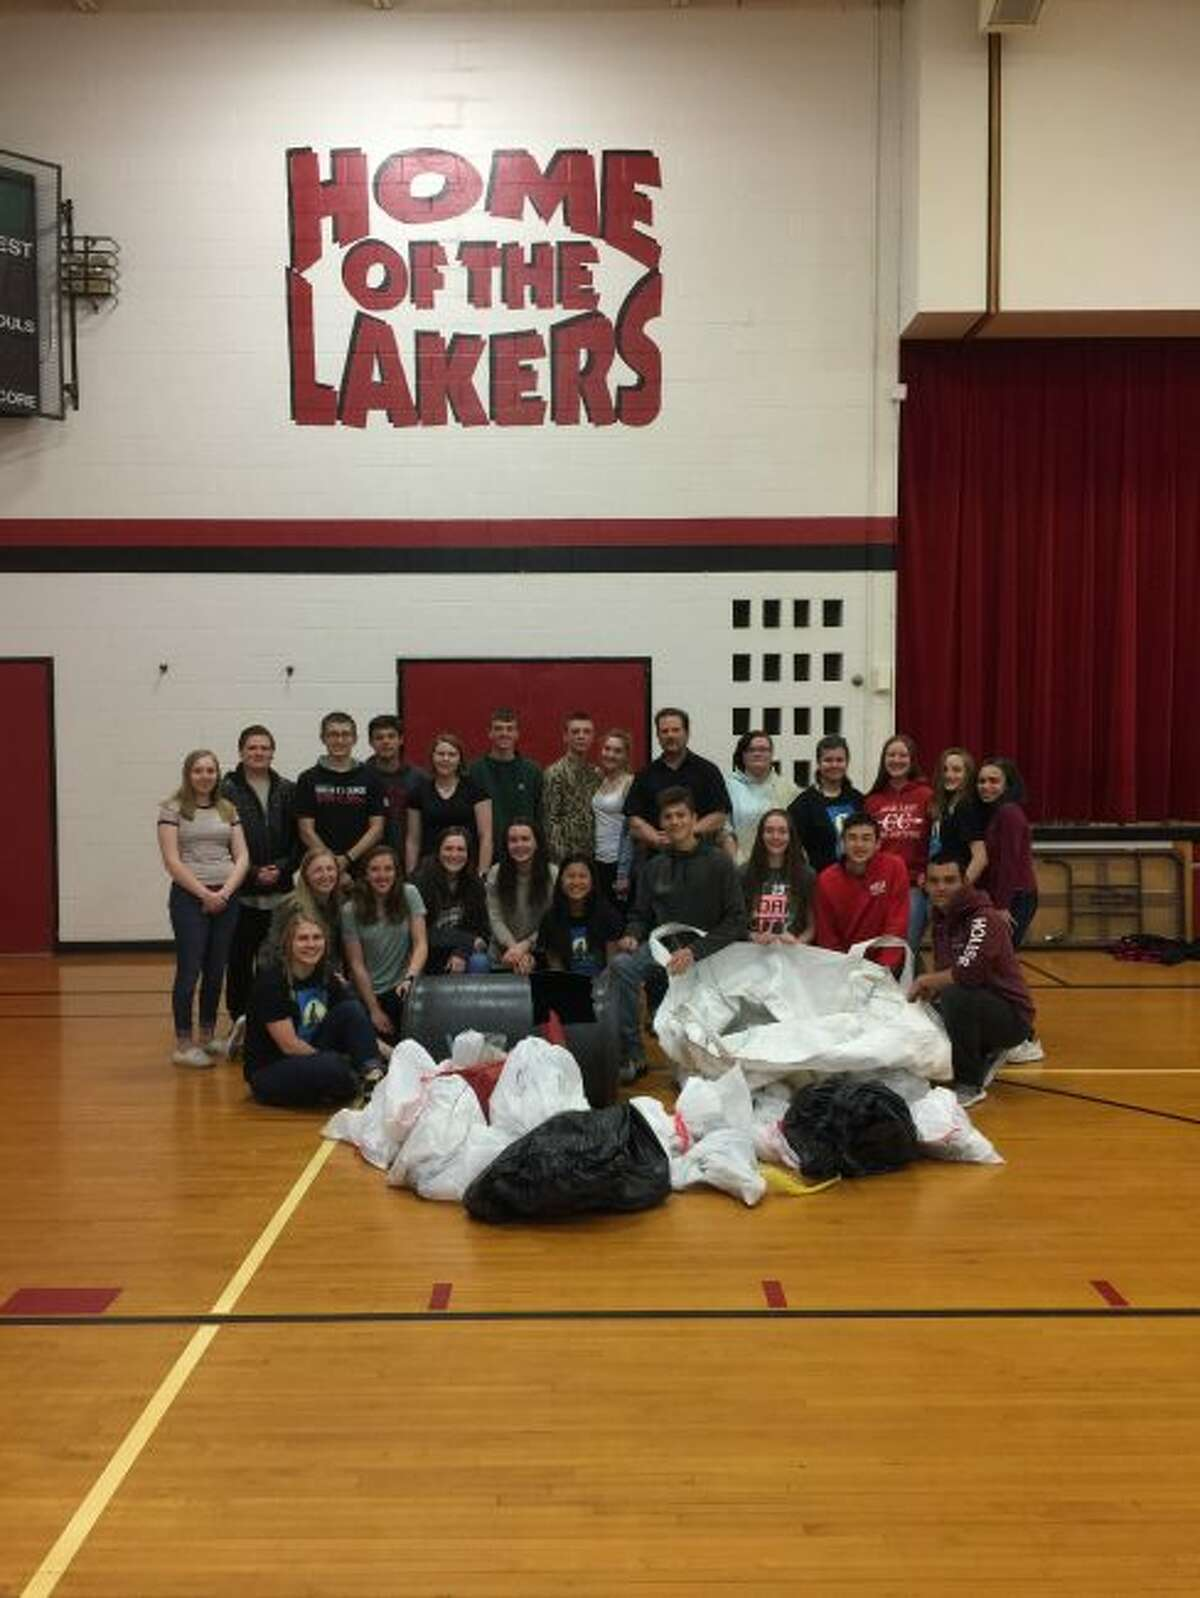 Bear Lake School students along with teacher John Prokes show their community pride as they display the bags of plastic trash they collected off the shore of Lake Michigan by the Sleeping Bear Dunes National Park.